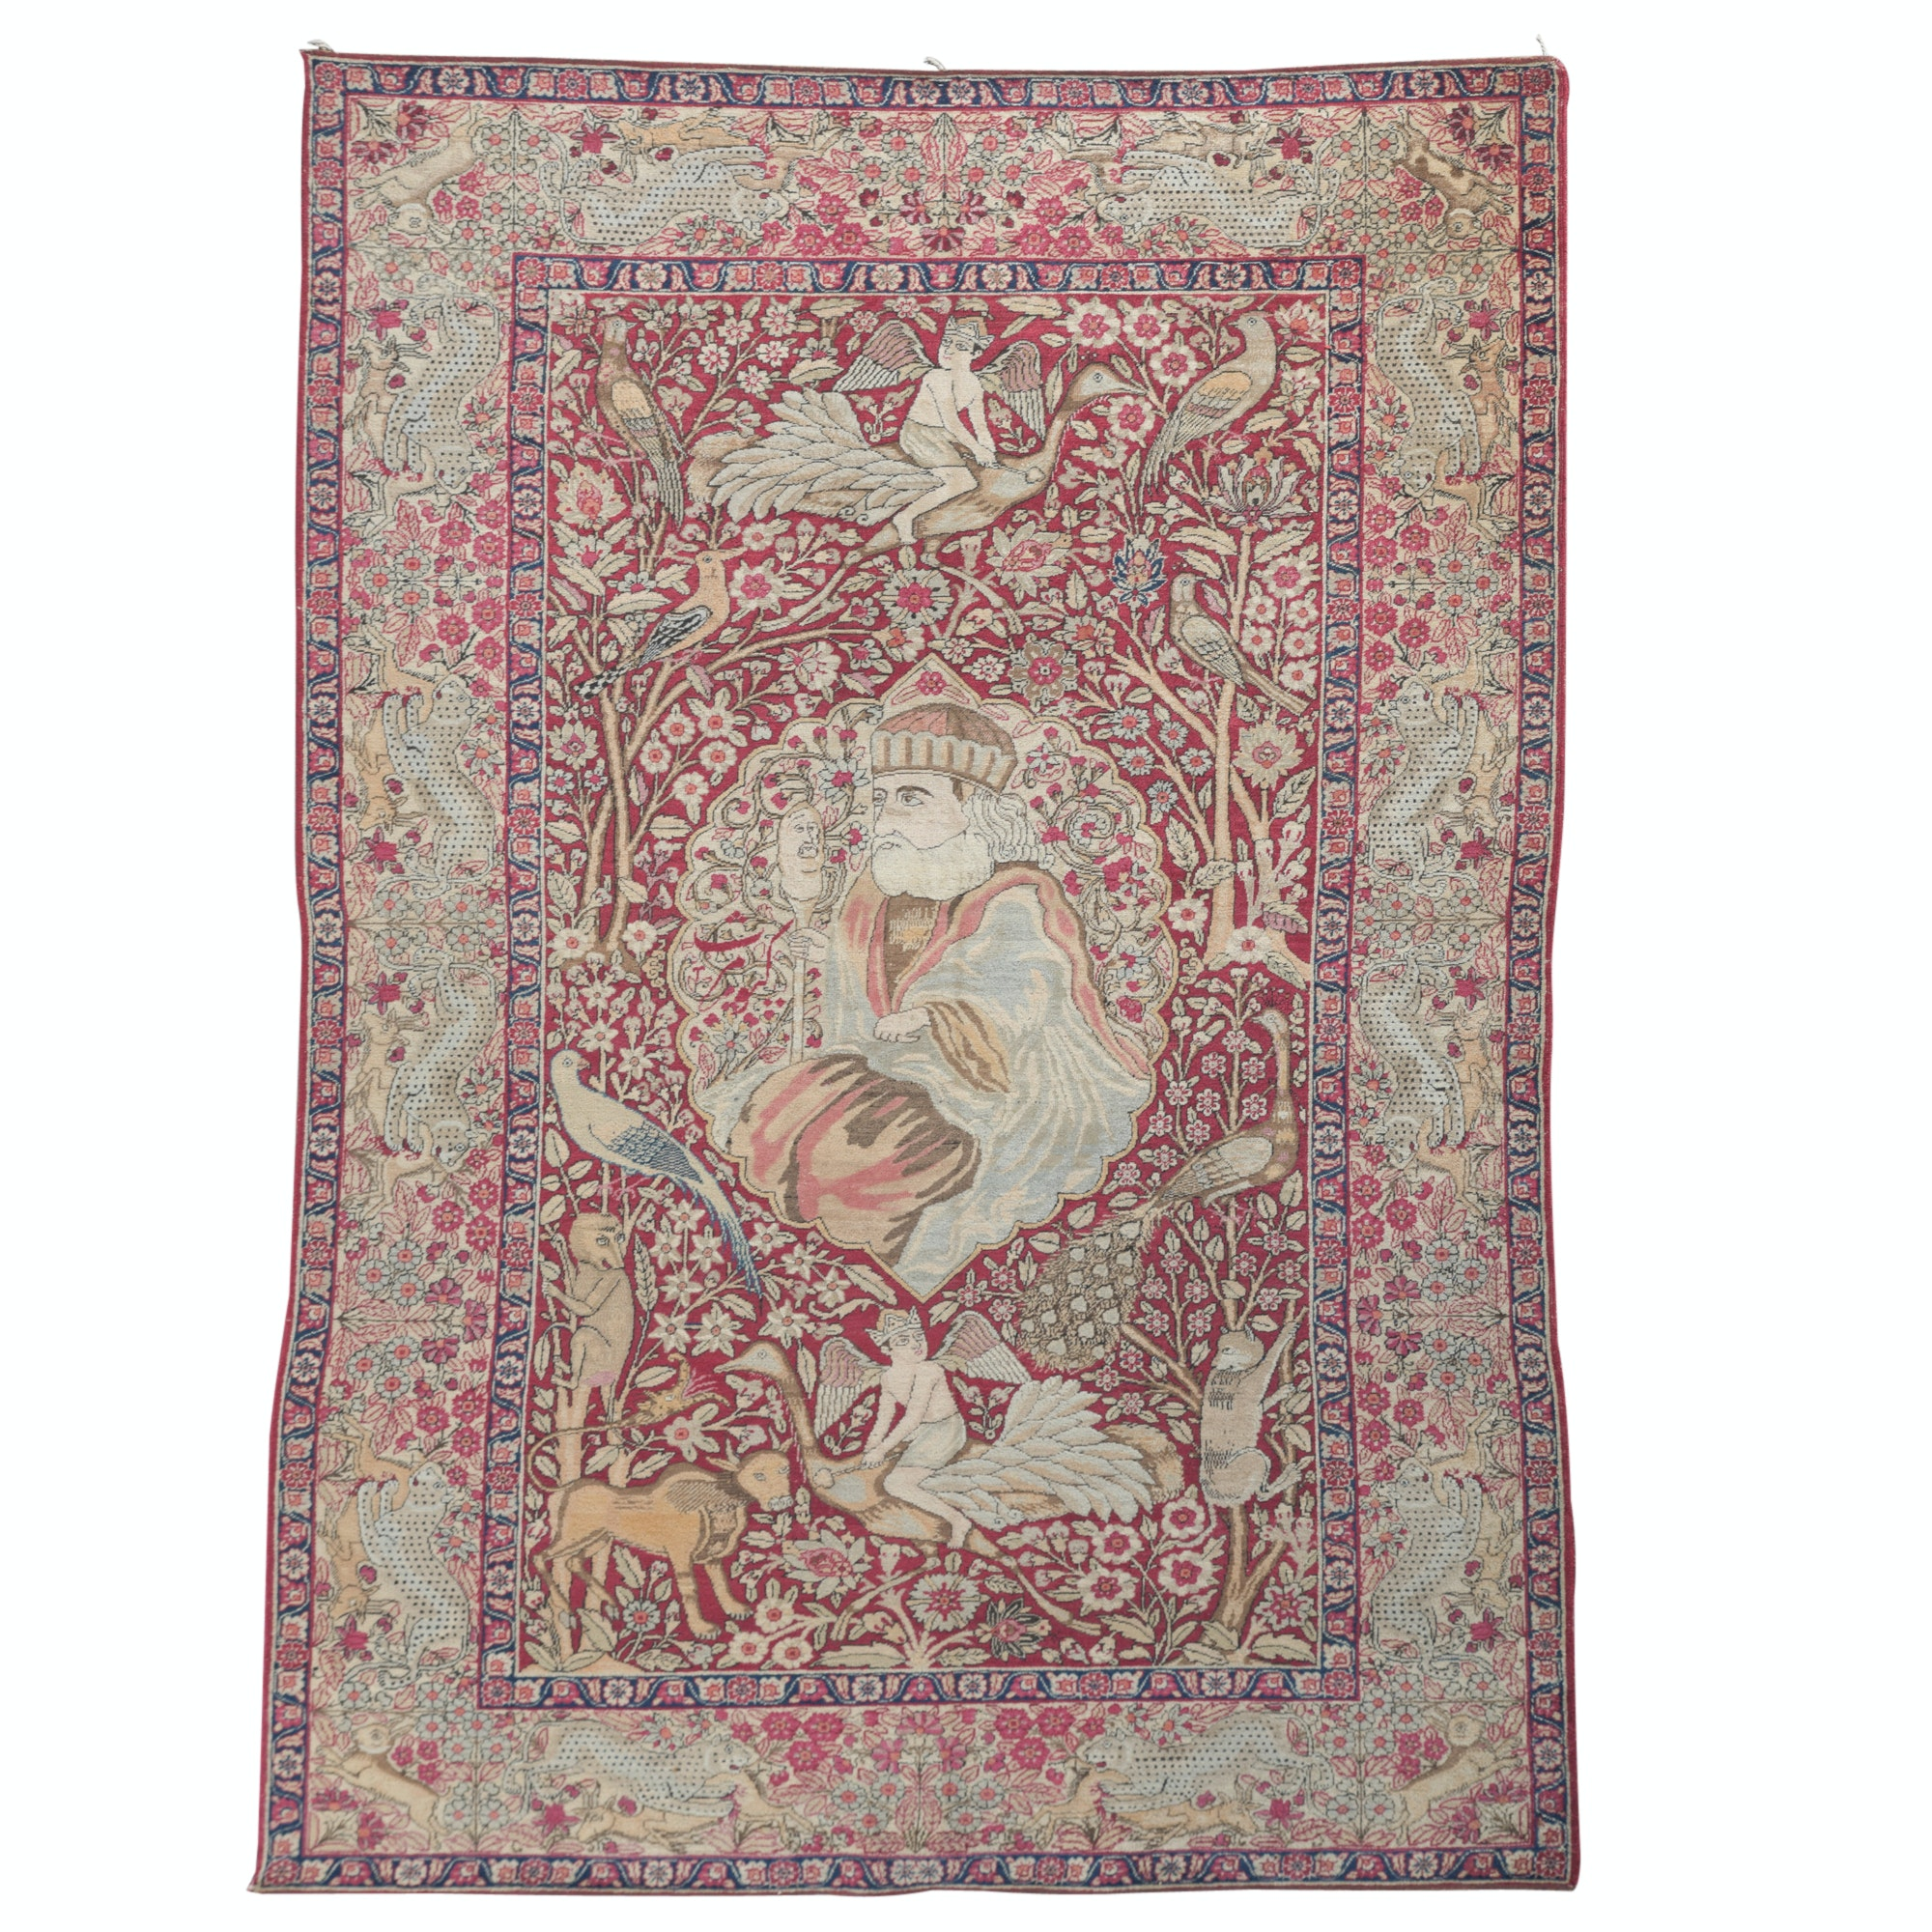 Exceptional Antique Hand-Knotted Lavar Kerman Pictorial Silk Rug, 19th Century